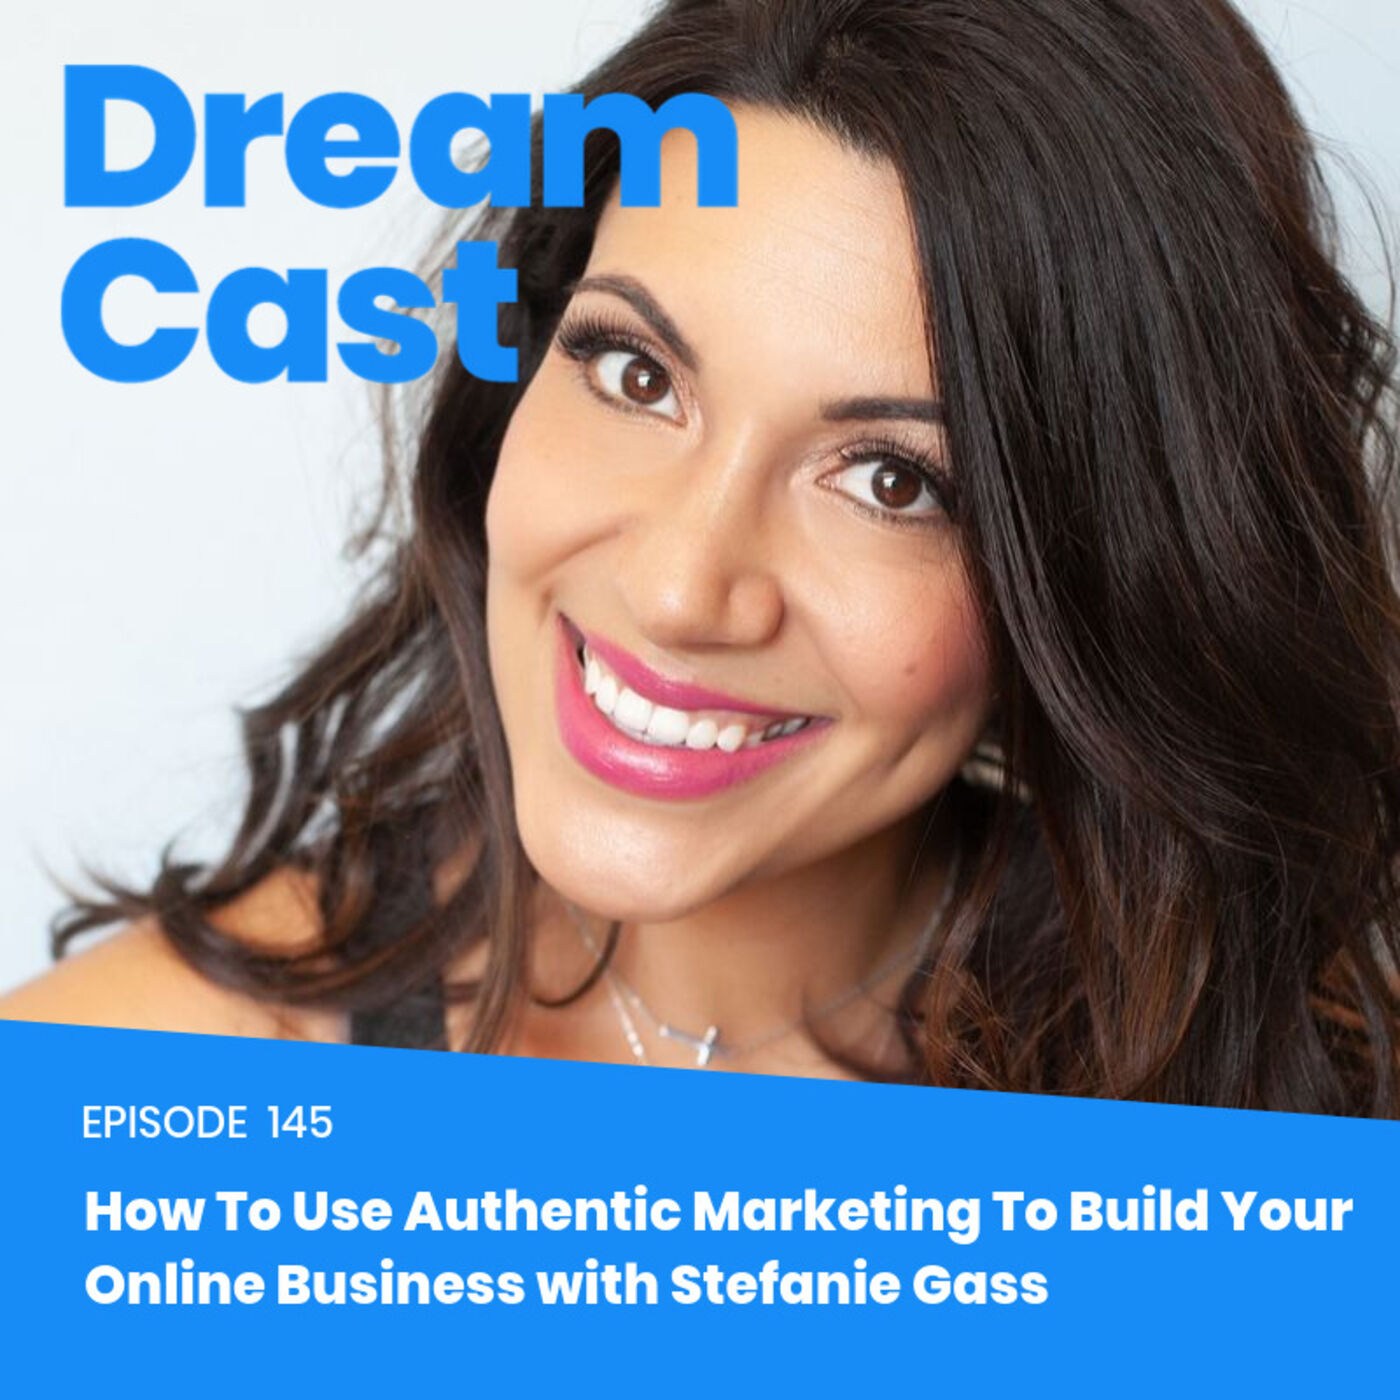 145: How To Use Authentic Marketing To Build Your Online Business with Stefanie Gass